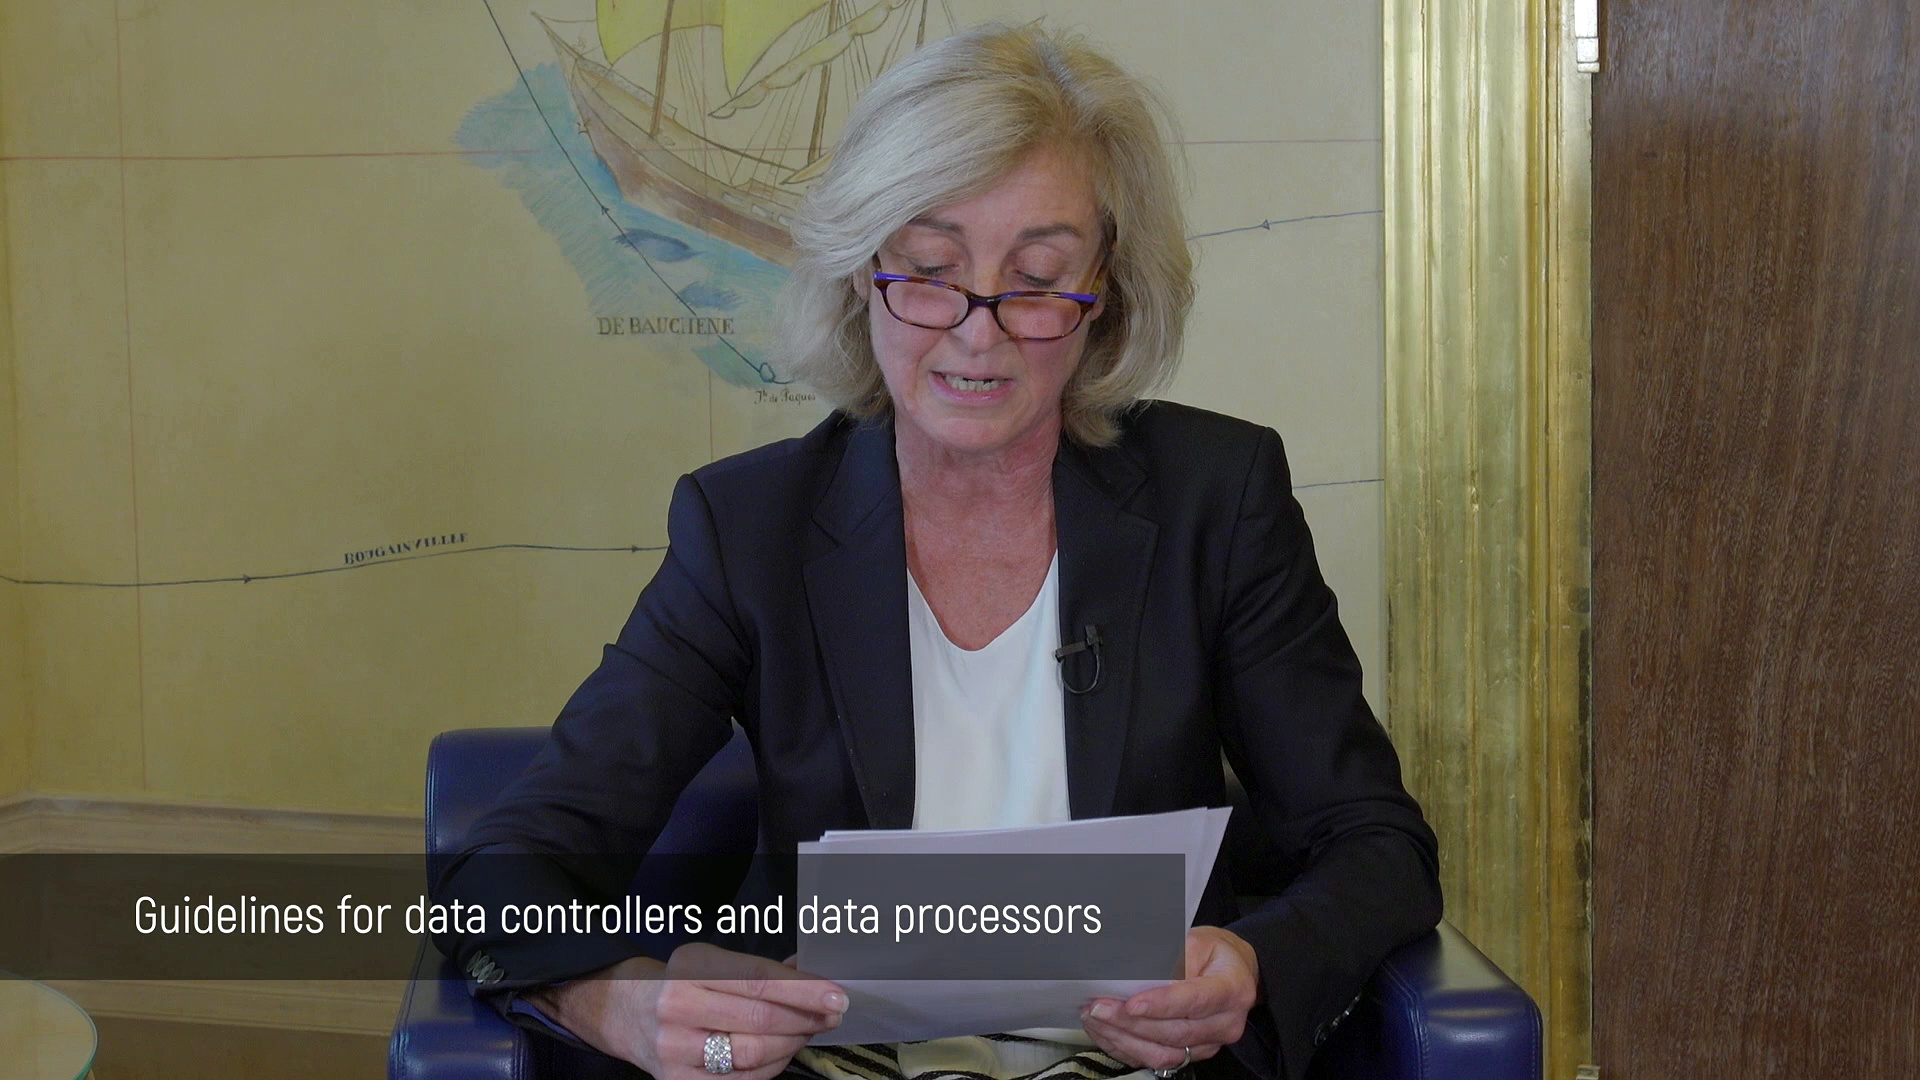 """Isabelle Falque-Pierrotin : """"this GDPR is a major cultural change in Europe"""""""